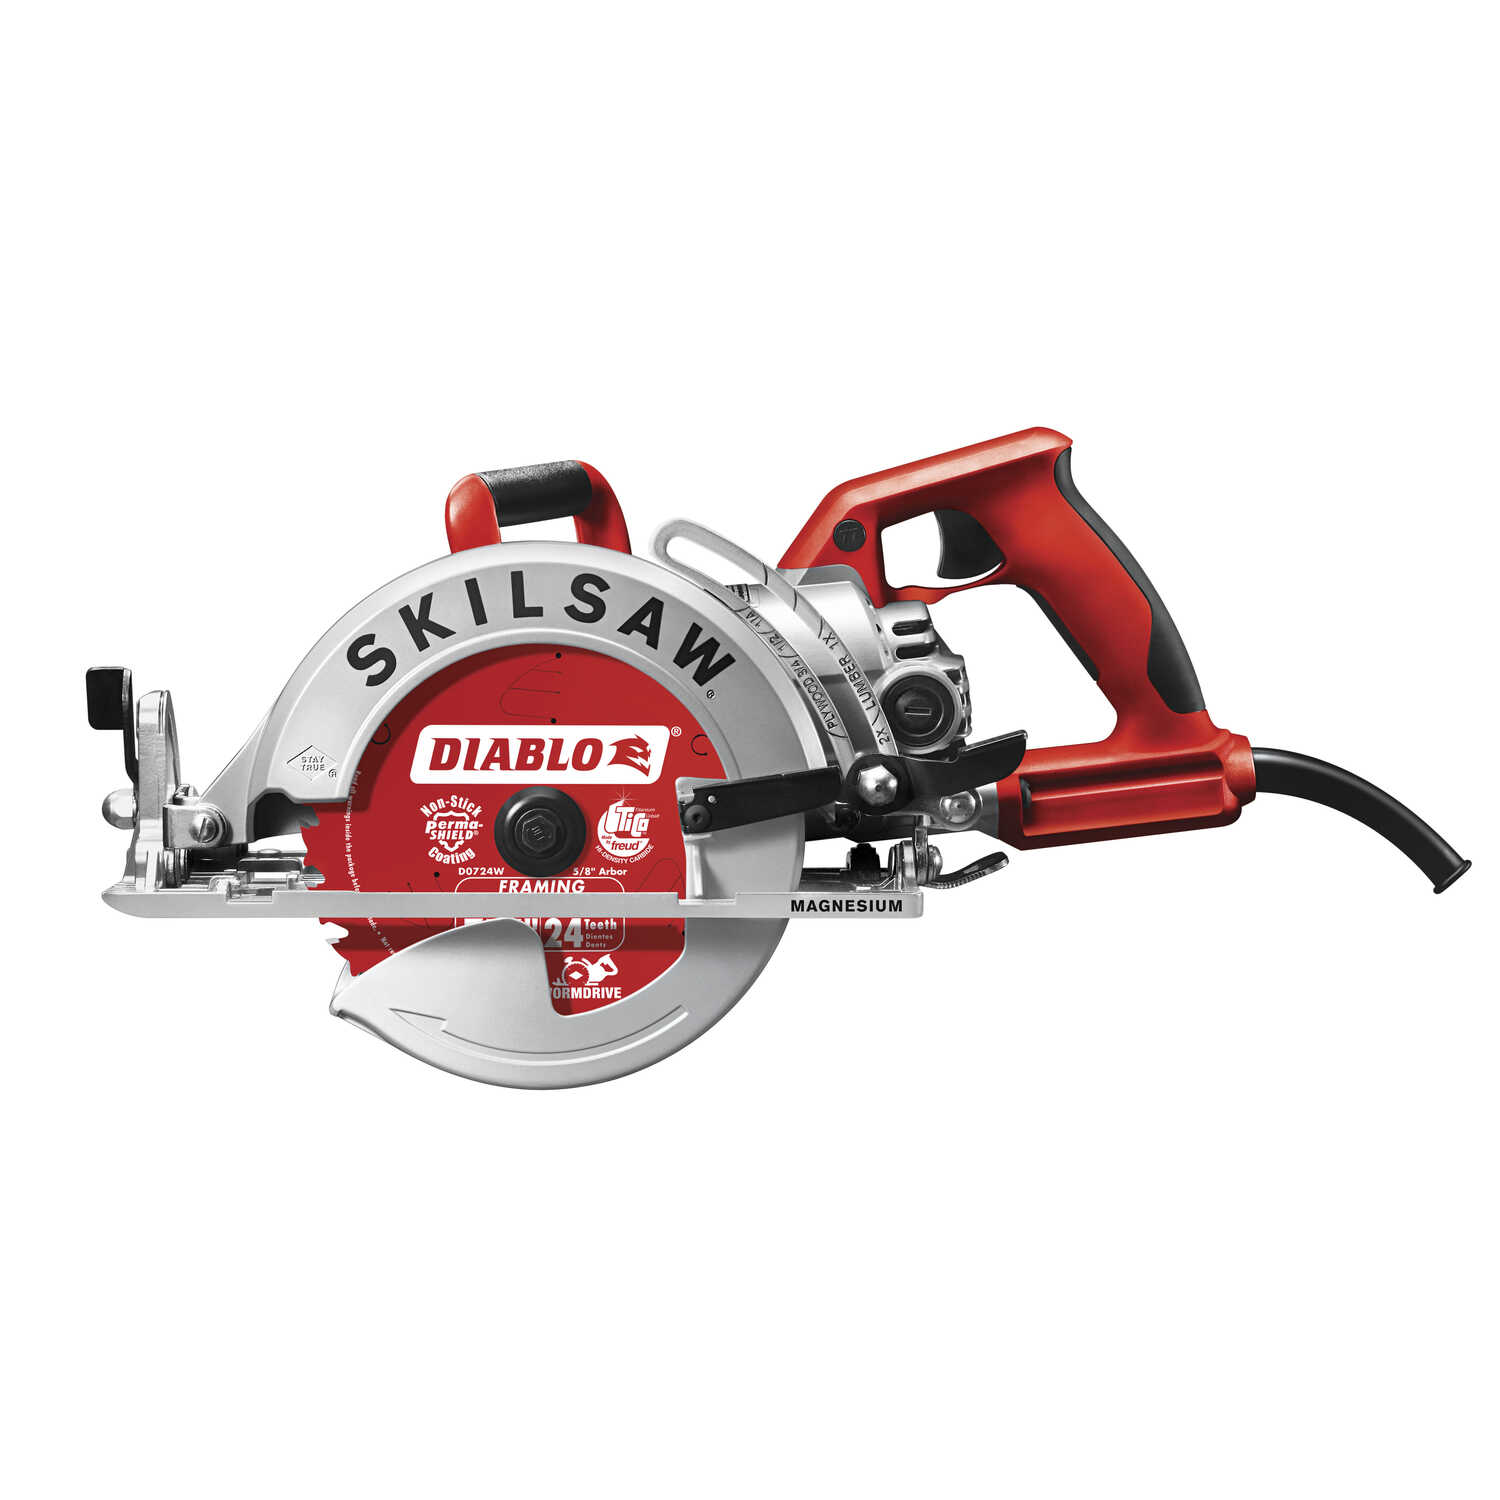 SKILSAW Diablo 7-1/4 in. 15 amps Worm Drive Mag Saw 120 volts 5300 ...